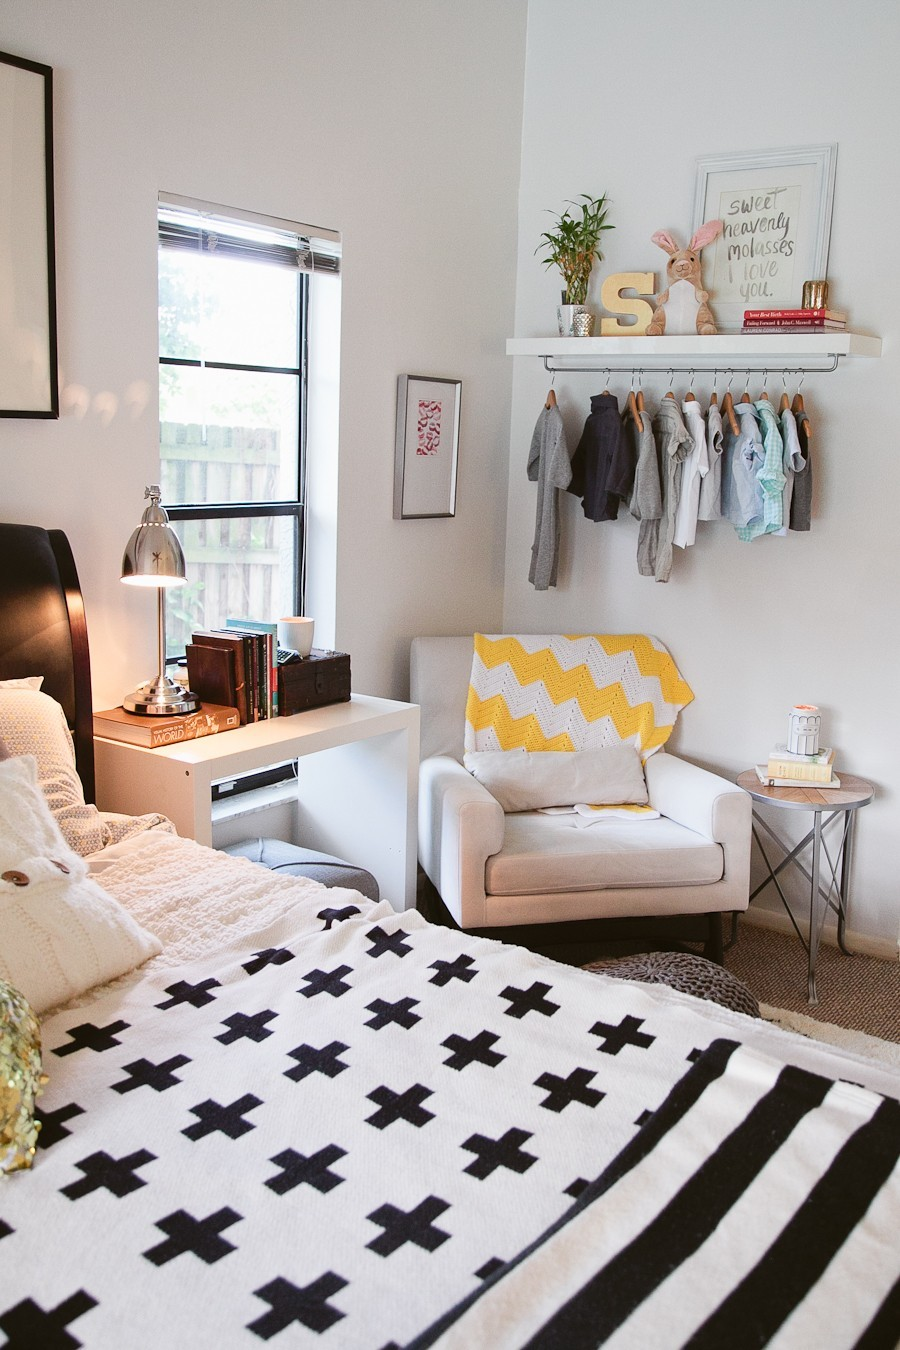 5 Tips to Cozy Up a Rental Space | Bedroom Makeover on Fresh Mommy Blog-20